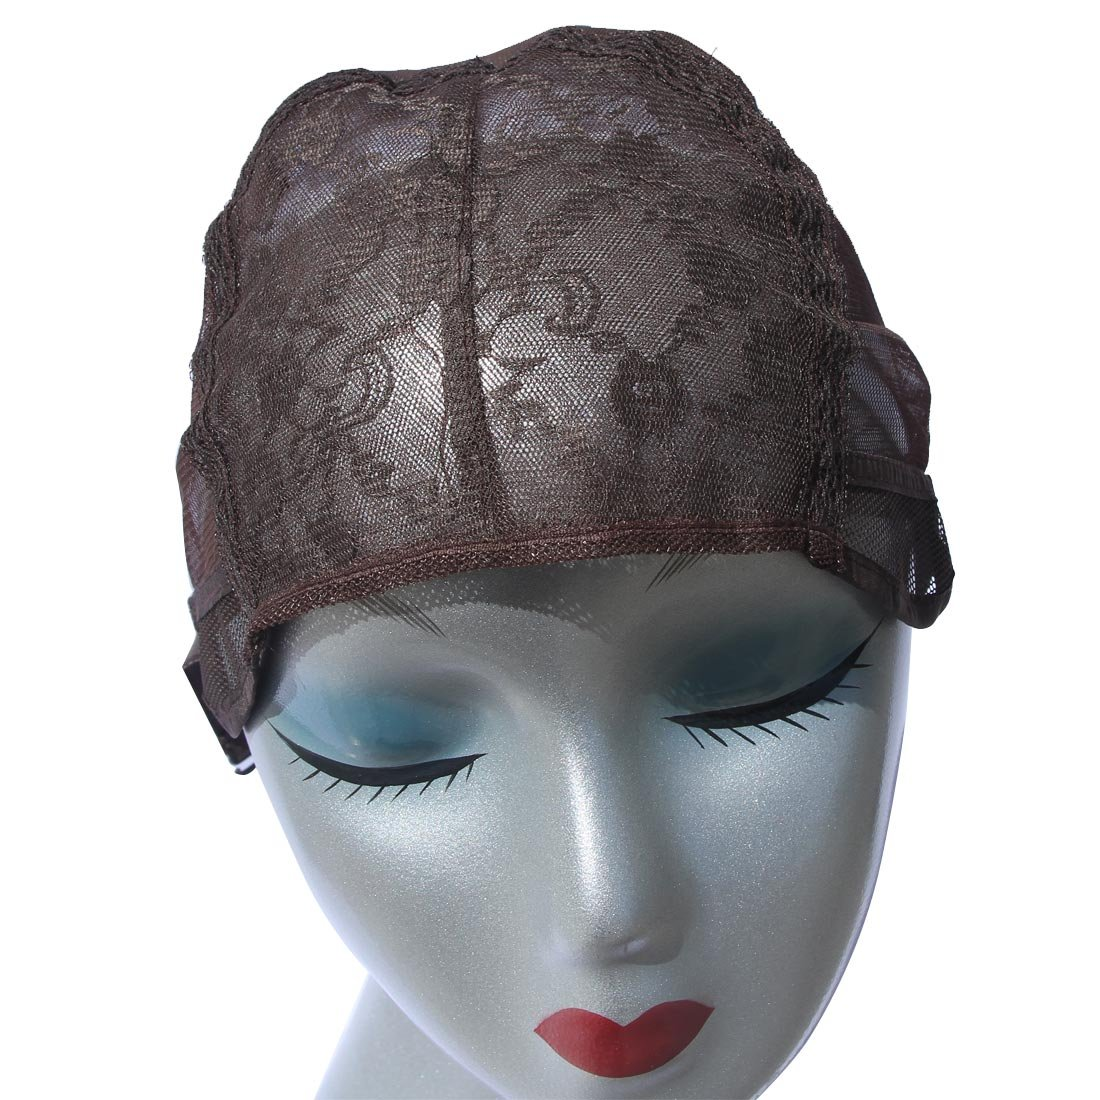 MQYQ 5pcs Brown Swiss Lace Front Wig Caps With Elastic Adjustable Straps for DIY Weaving Sewing Making Wig Hair Weft